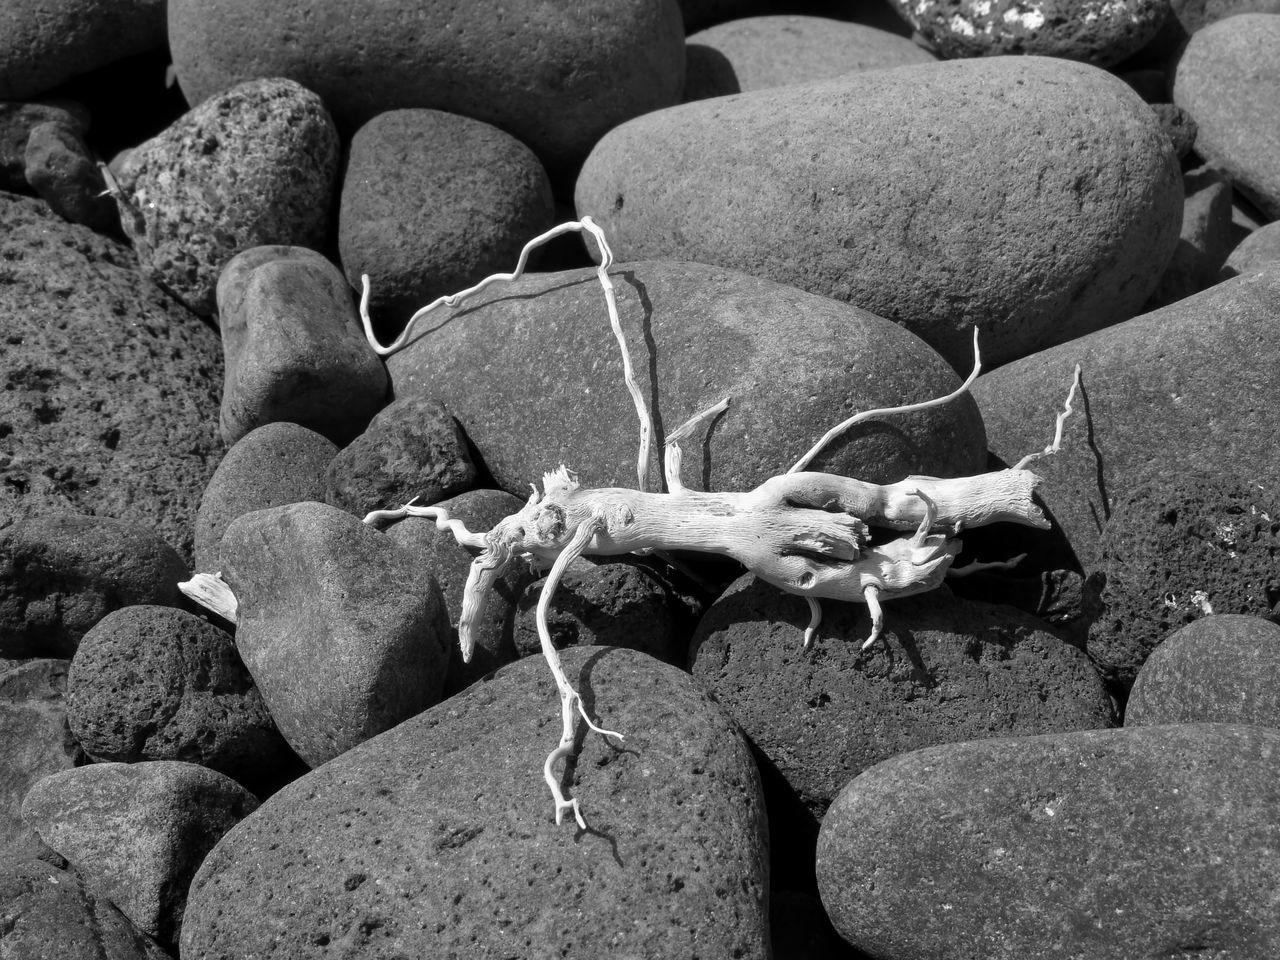 Piece of wood on pebbles with a shape of an animal, seen at the beach of Canico on the island of Madeira. Animal Themes Black And White Branch Close-up Day Nature No People Outdoors Pebbles On A Beach Rock - Object Round Shape Wood - Material